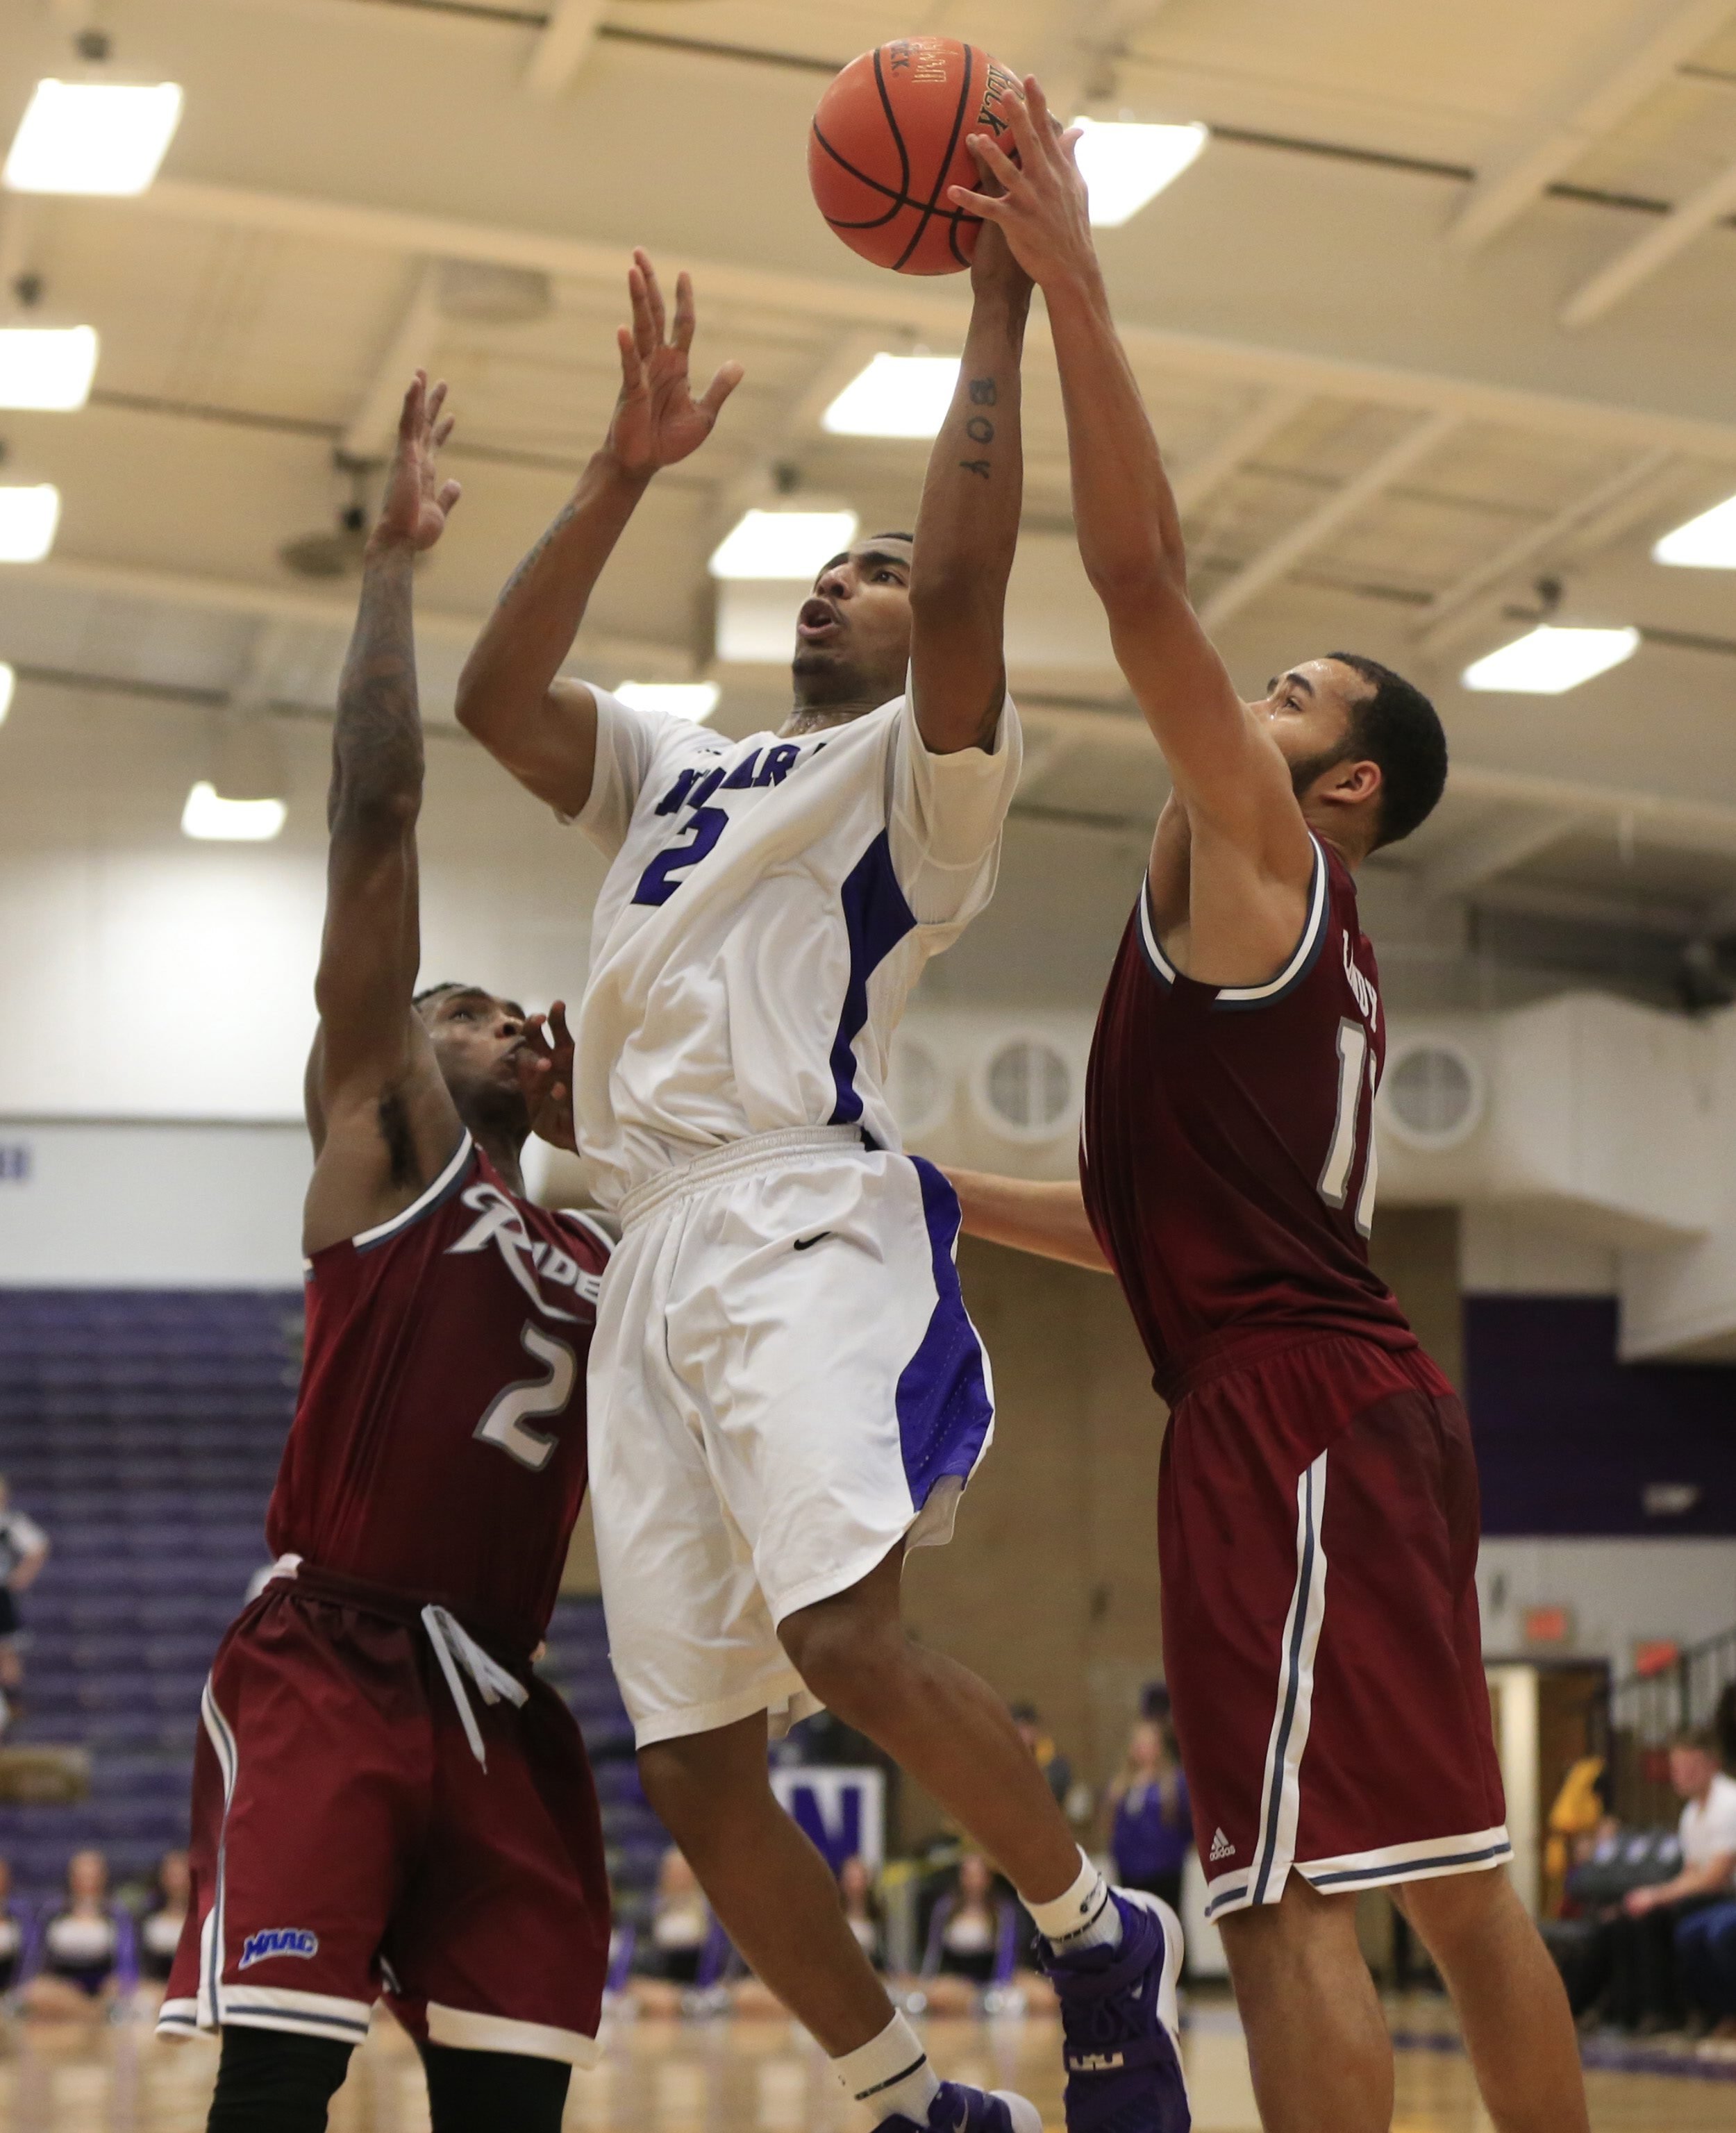 Niagara's Emile Blackman shoots against Rider during second half action at the Koessler Center on Friday, Feb. 5, 2016.  (Harry Scull Jr./Buffalo News)